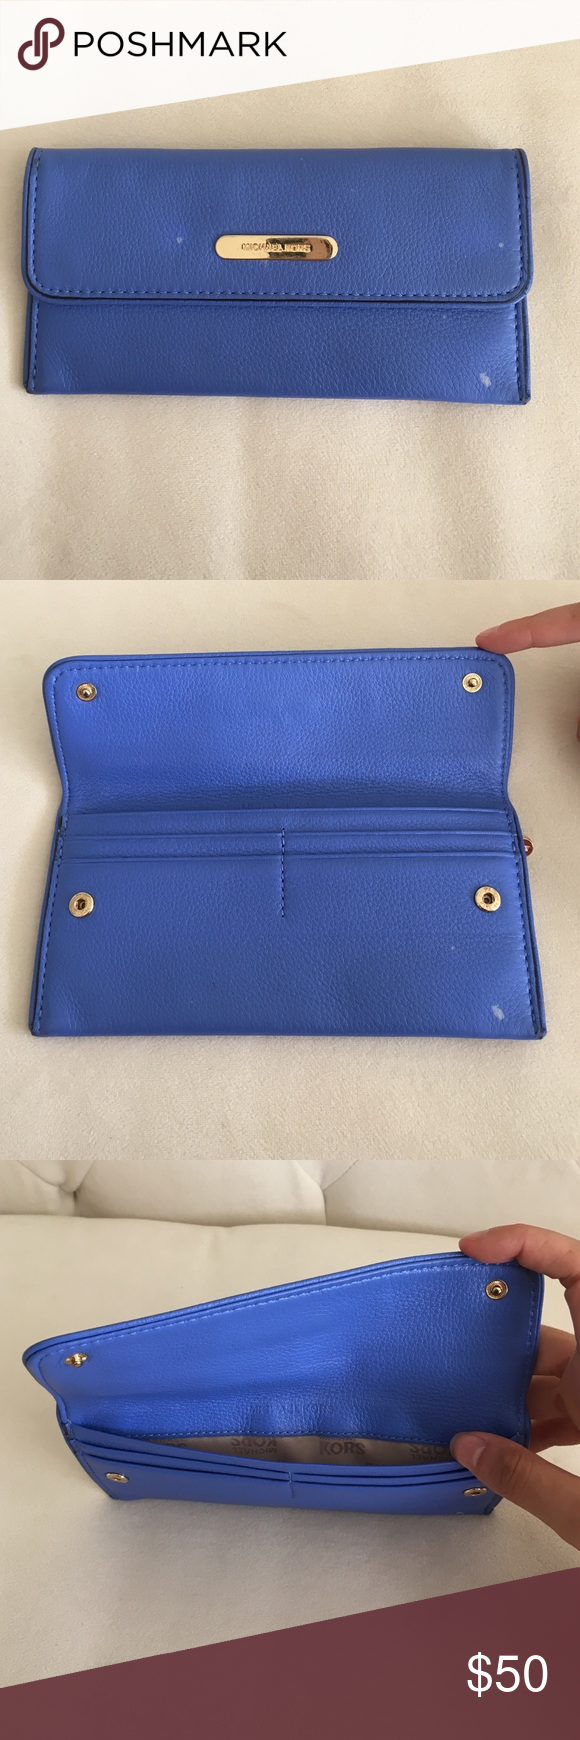 Michael Kors Slim Wallet (price negotiable) overall in good condition considering use , only imperfections are as seen in the photo which is on the front of the wallet but nothing major and this wallet is very easy to carry around and light and beautiful color Michael Kors Bags Wallets